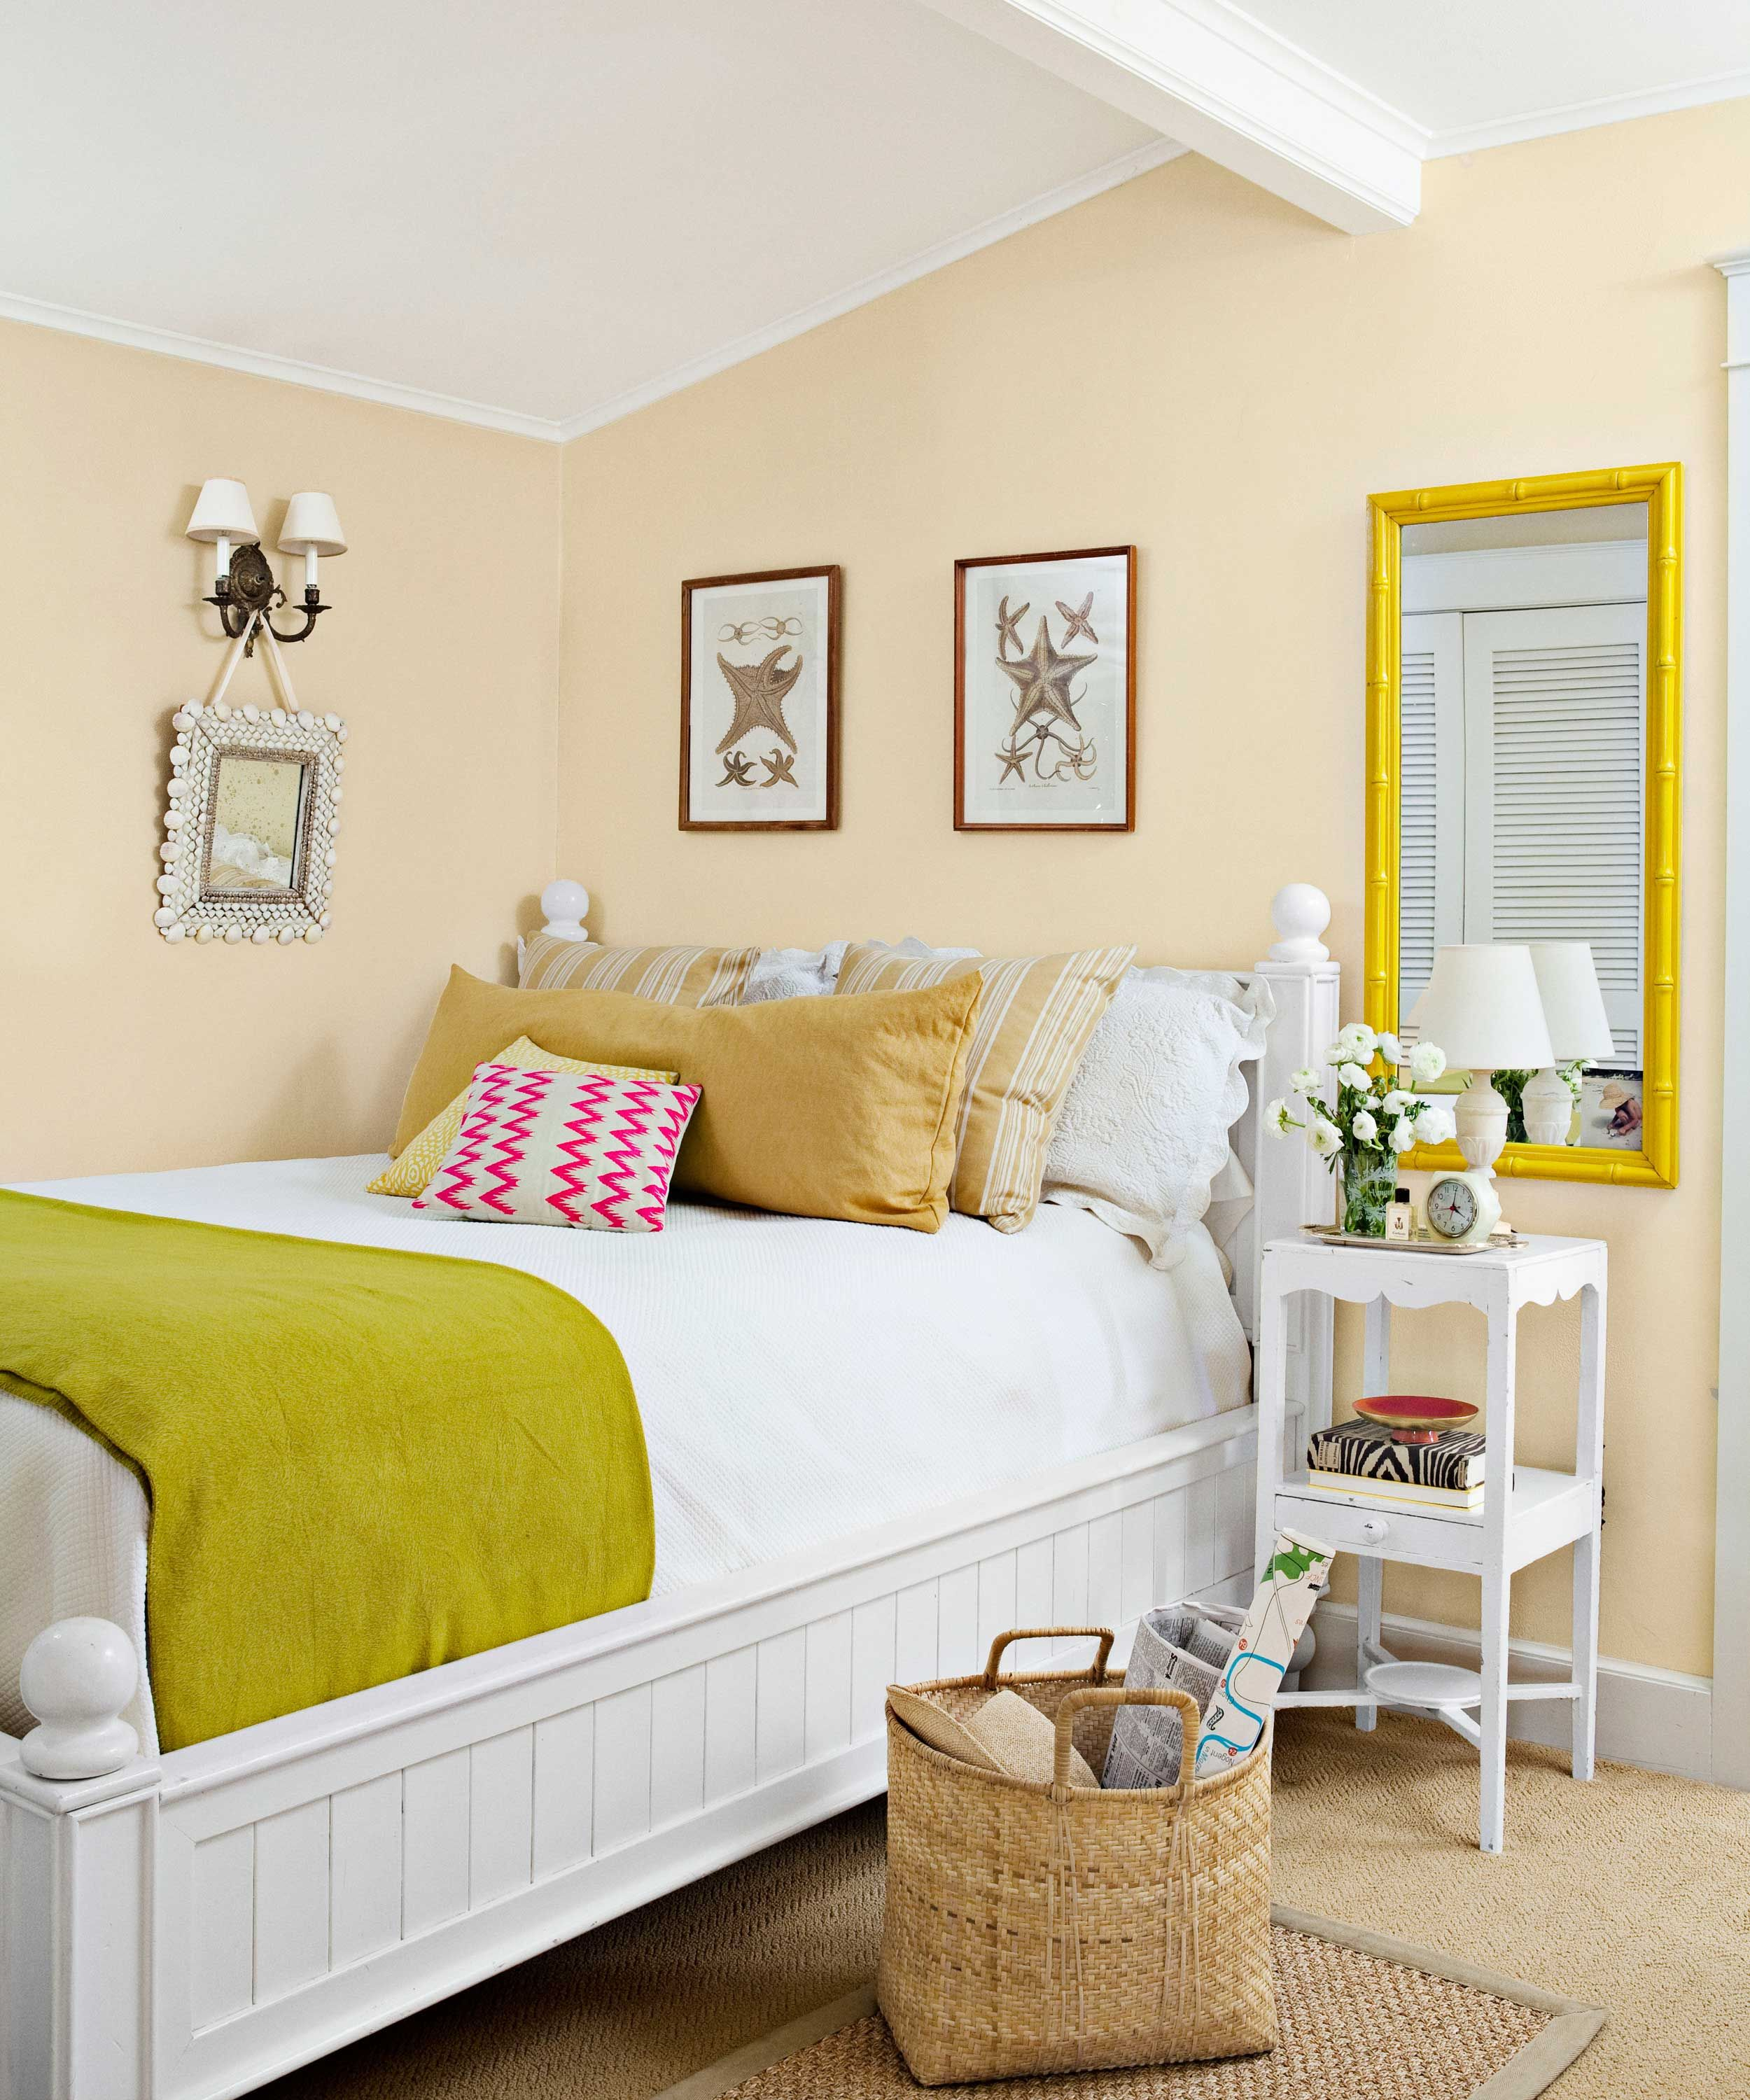 27 Of The Best Paint Colors For Small Spaces Small Bedroom Colours Warm Bedroom Colors Bedroom Color Schemes